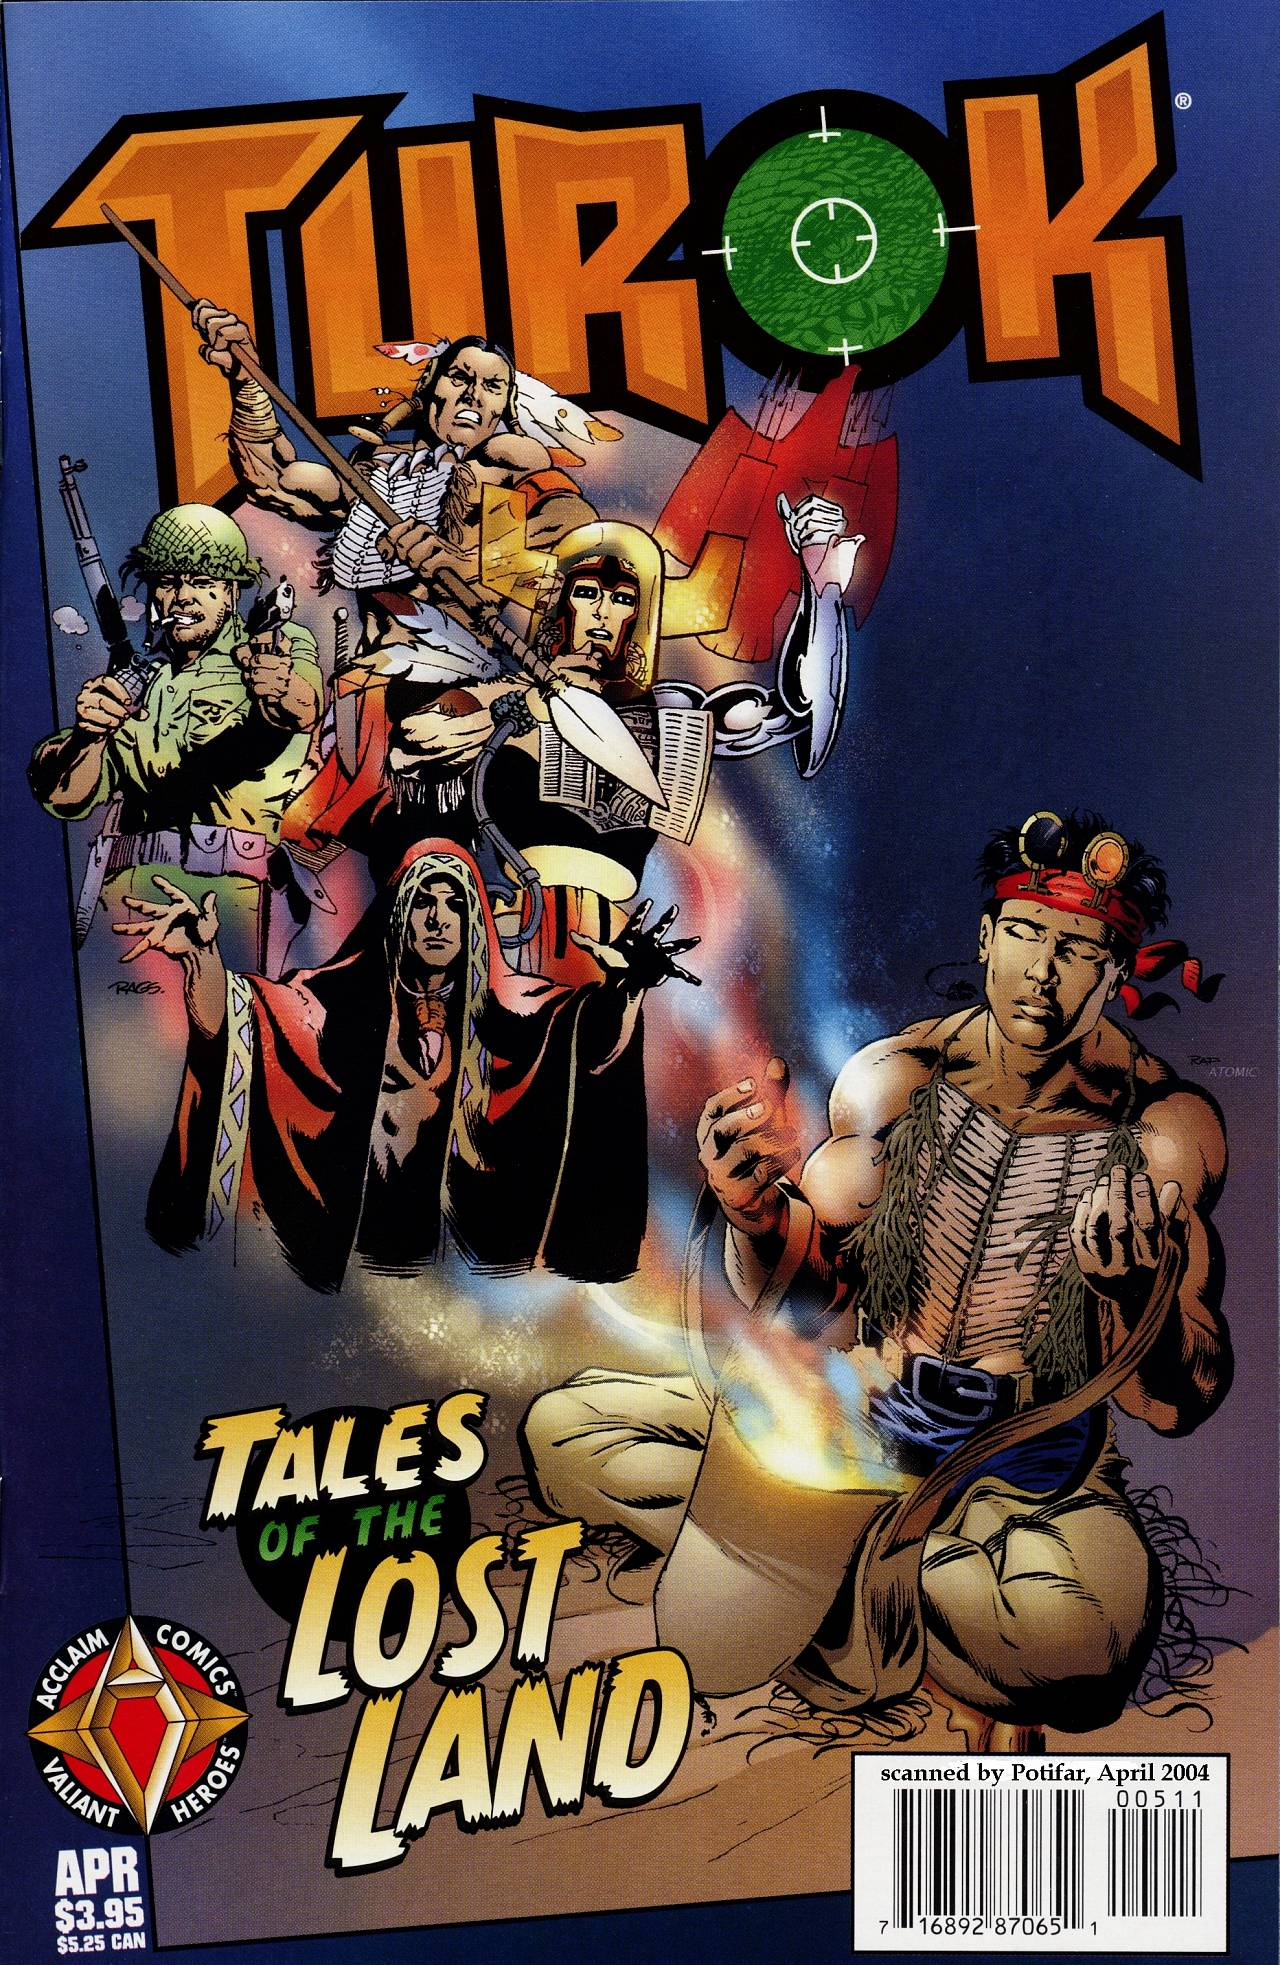 Read online Turok: Tales of the Lost Land comic -  Issue # Full - 1